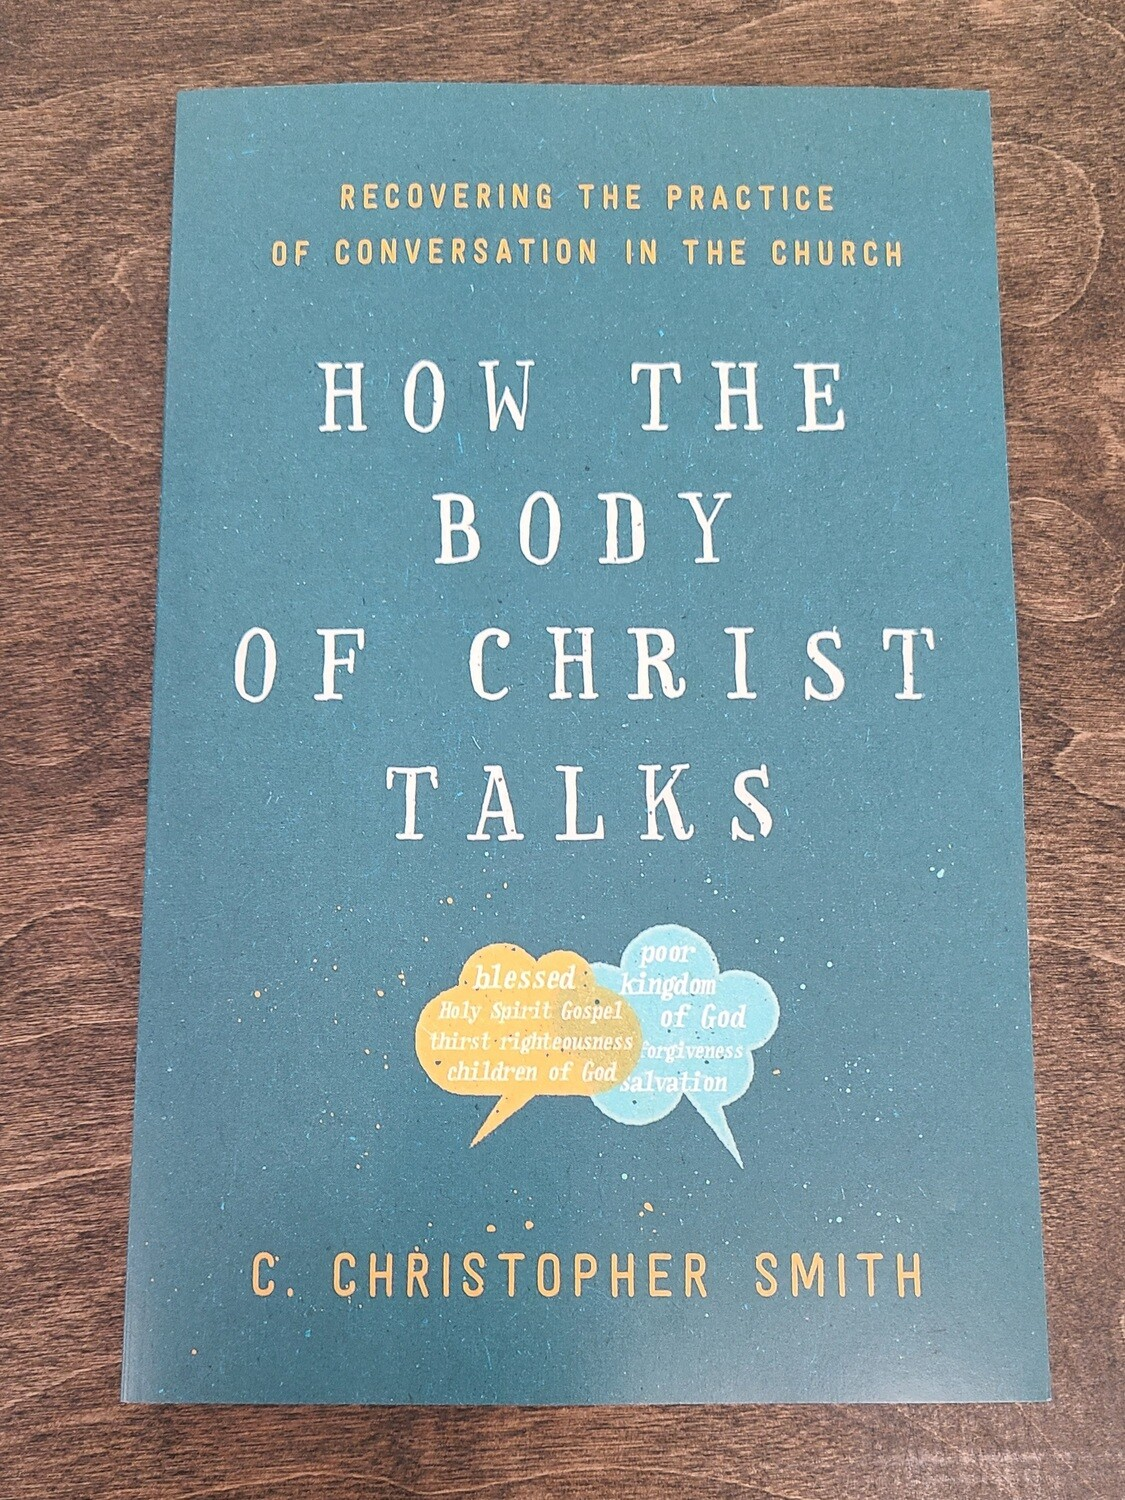 How the Body of Christ Talks: Recovering the Practice of Conversation in the Church by C. Christopher Smith